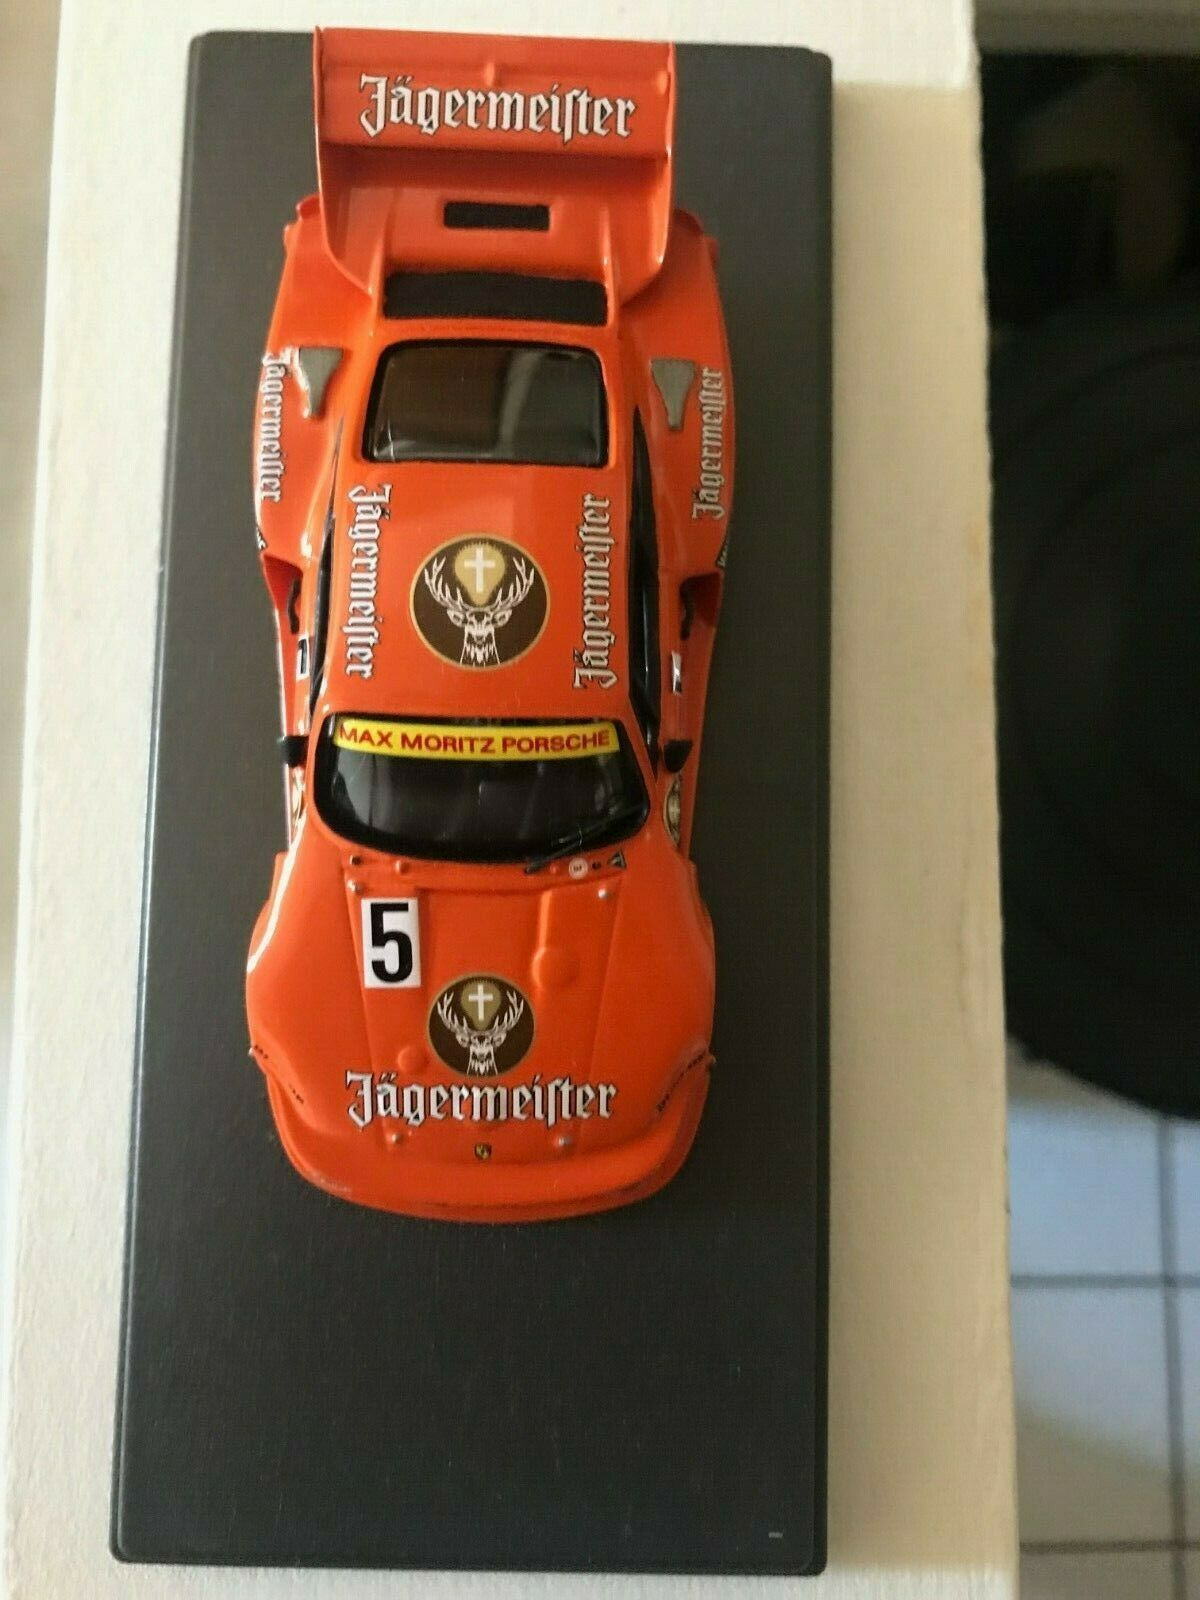 Porsche 935 Jagermeister Car   5 Nurburgring  78  1 43 Madyero built by Remember